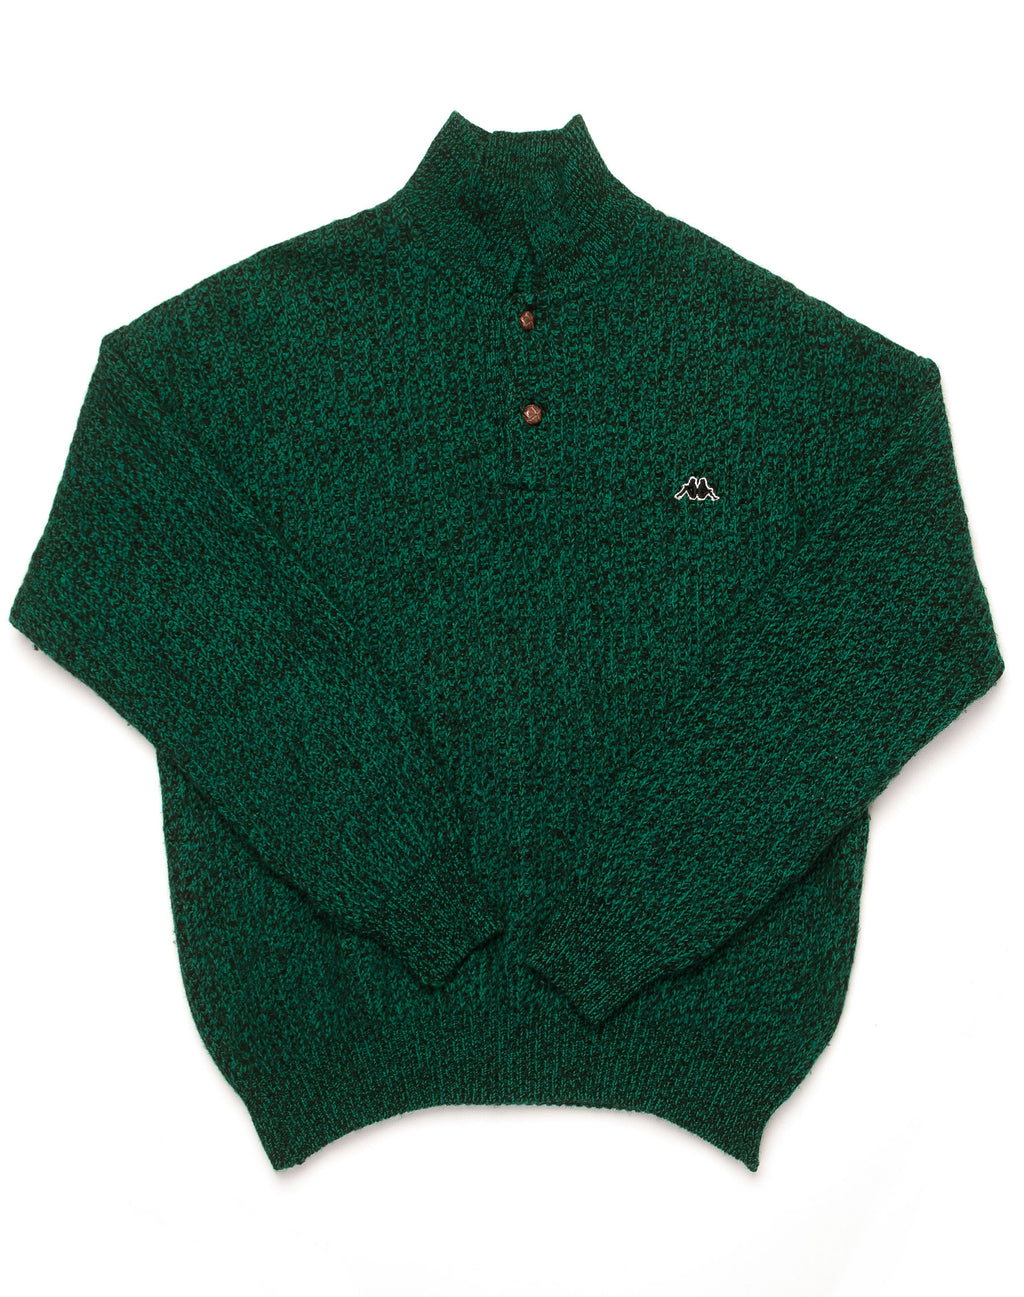 KAPPA GREEN KNITTED JUMPER SHIRT